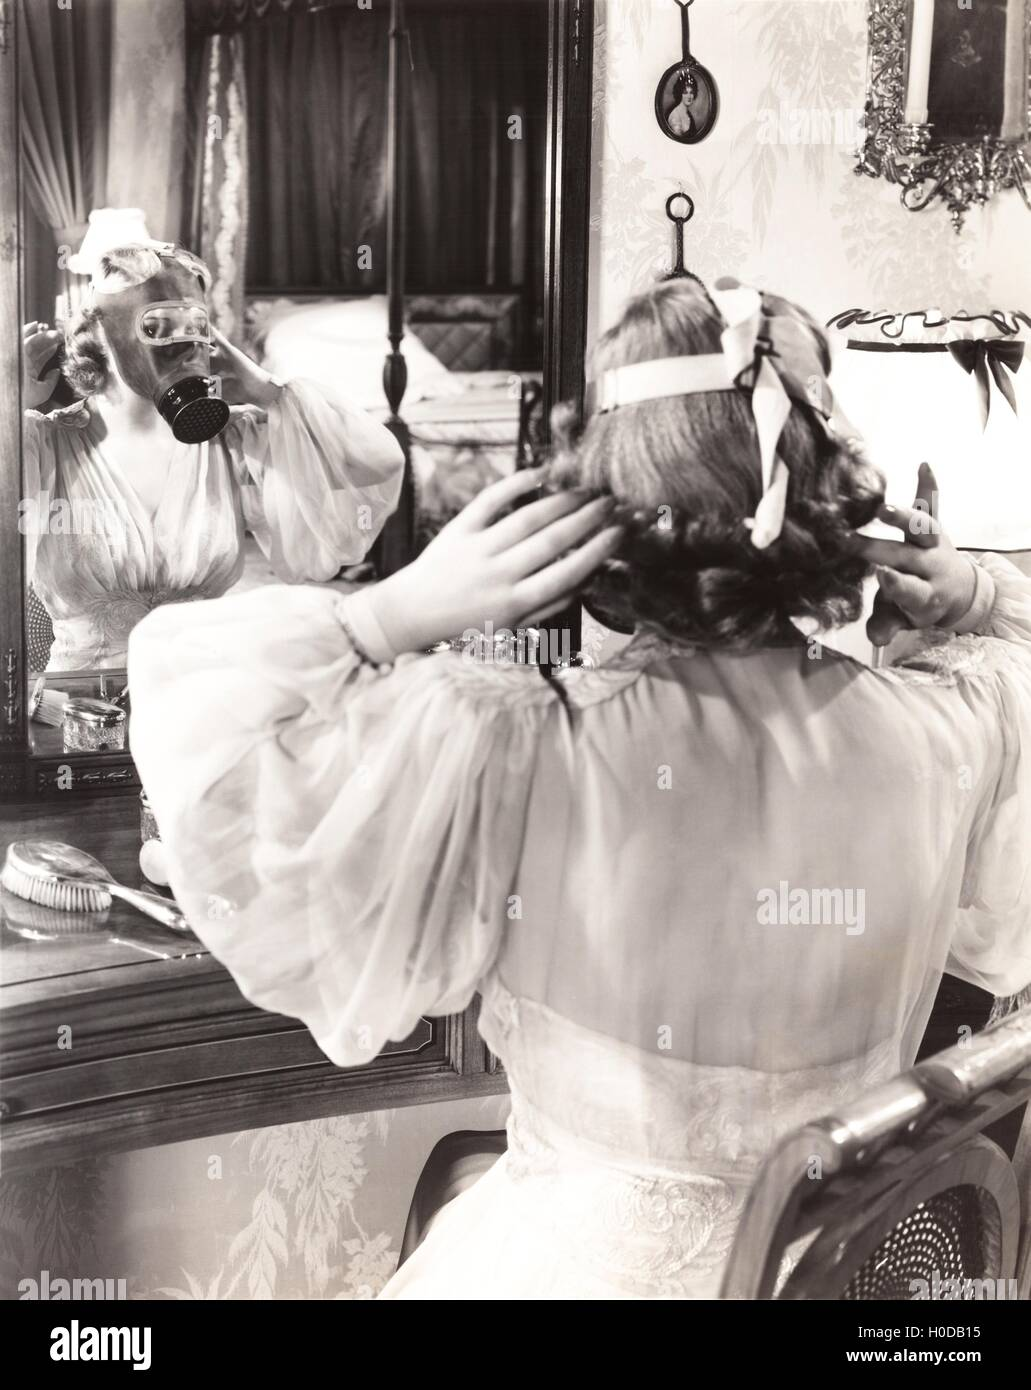 Woman in gas mask looking in mirror - Stock Image